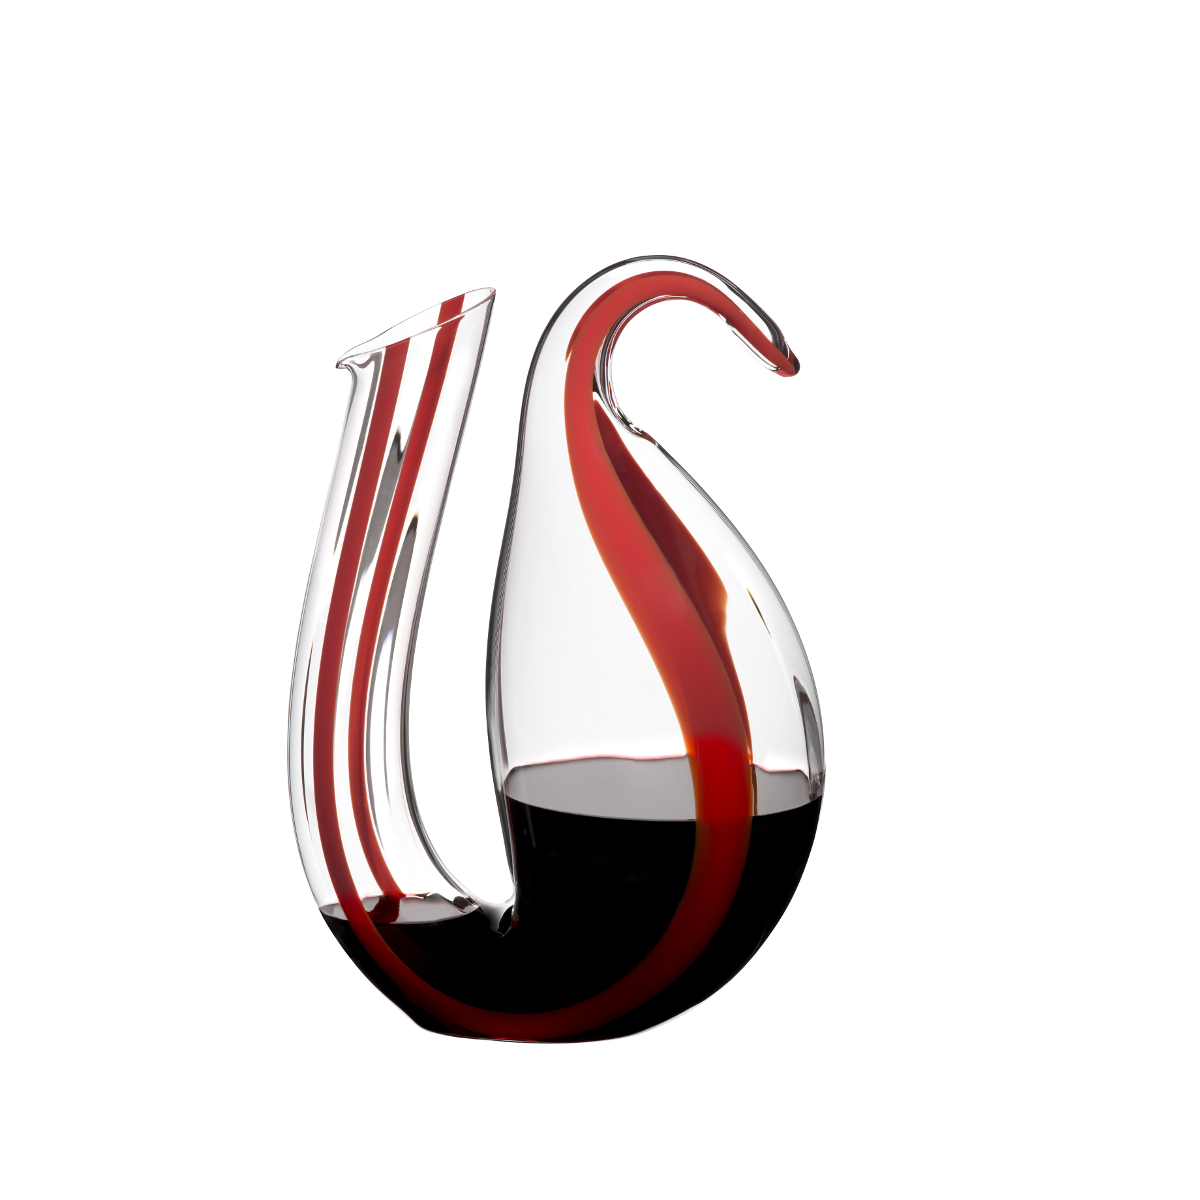 Riedel Ayam Magnum Red 1.56 Liter Wine Decanter